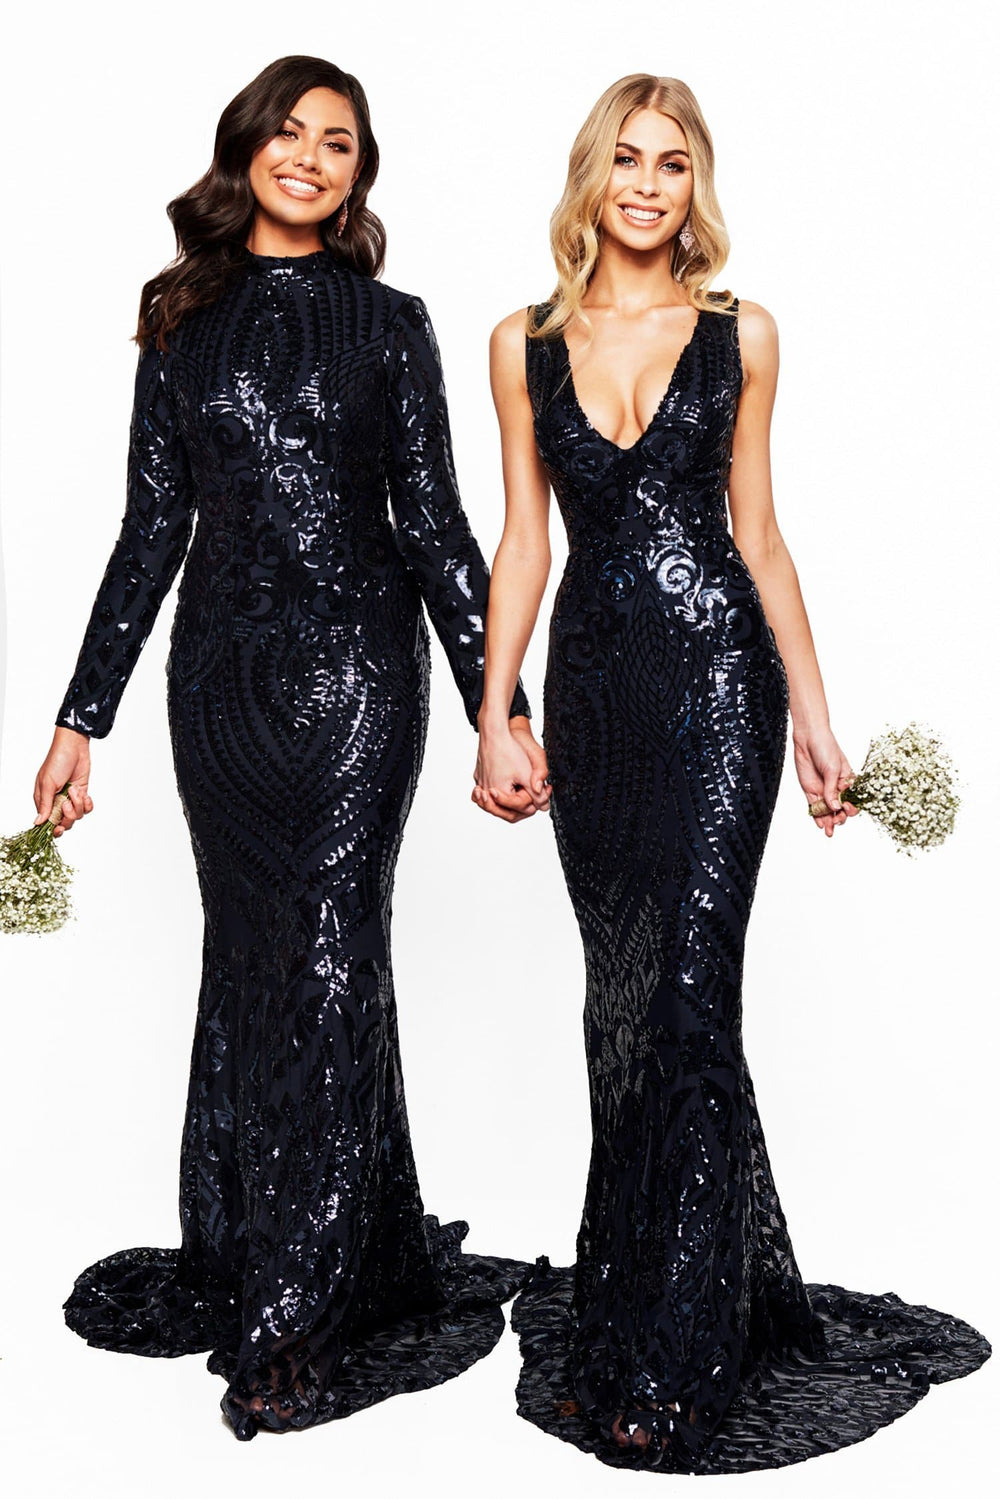 A&N Bridesmaids Crown - Navy Sequin Gown with Plunge Neck & Open Back